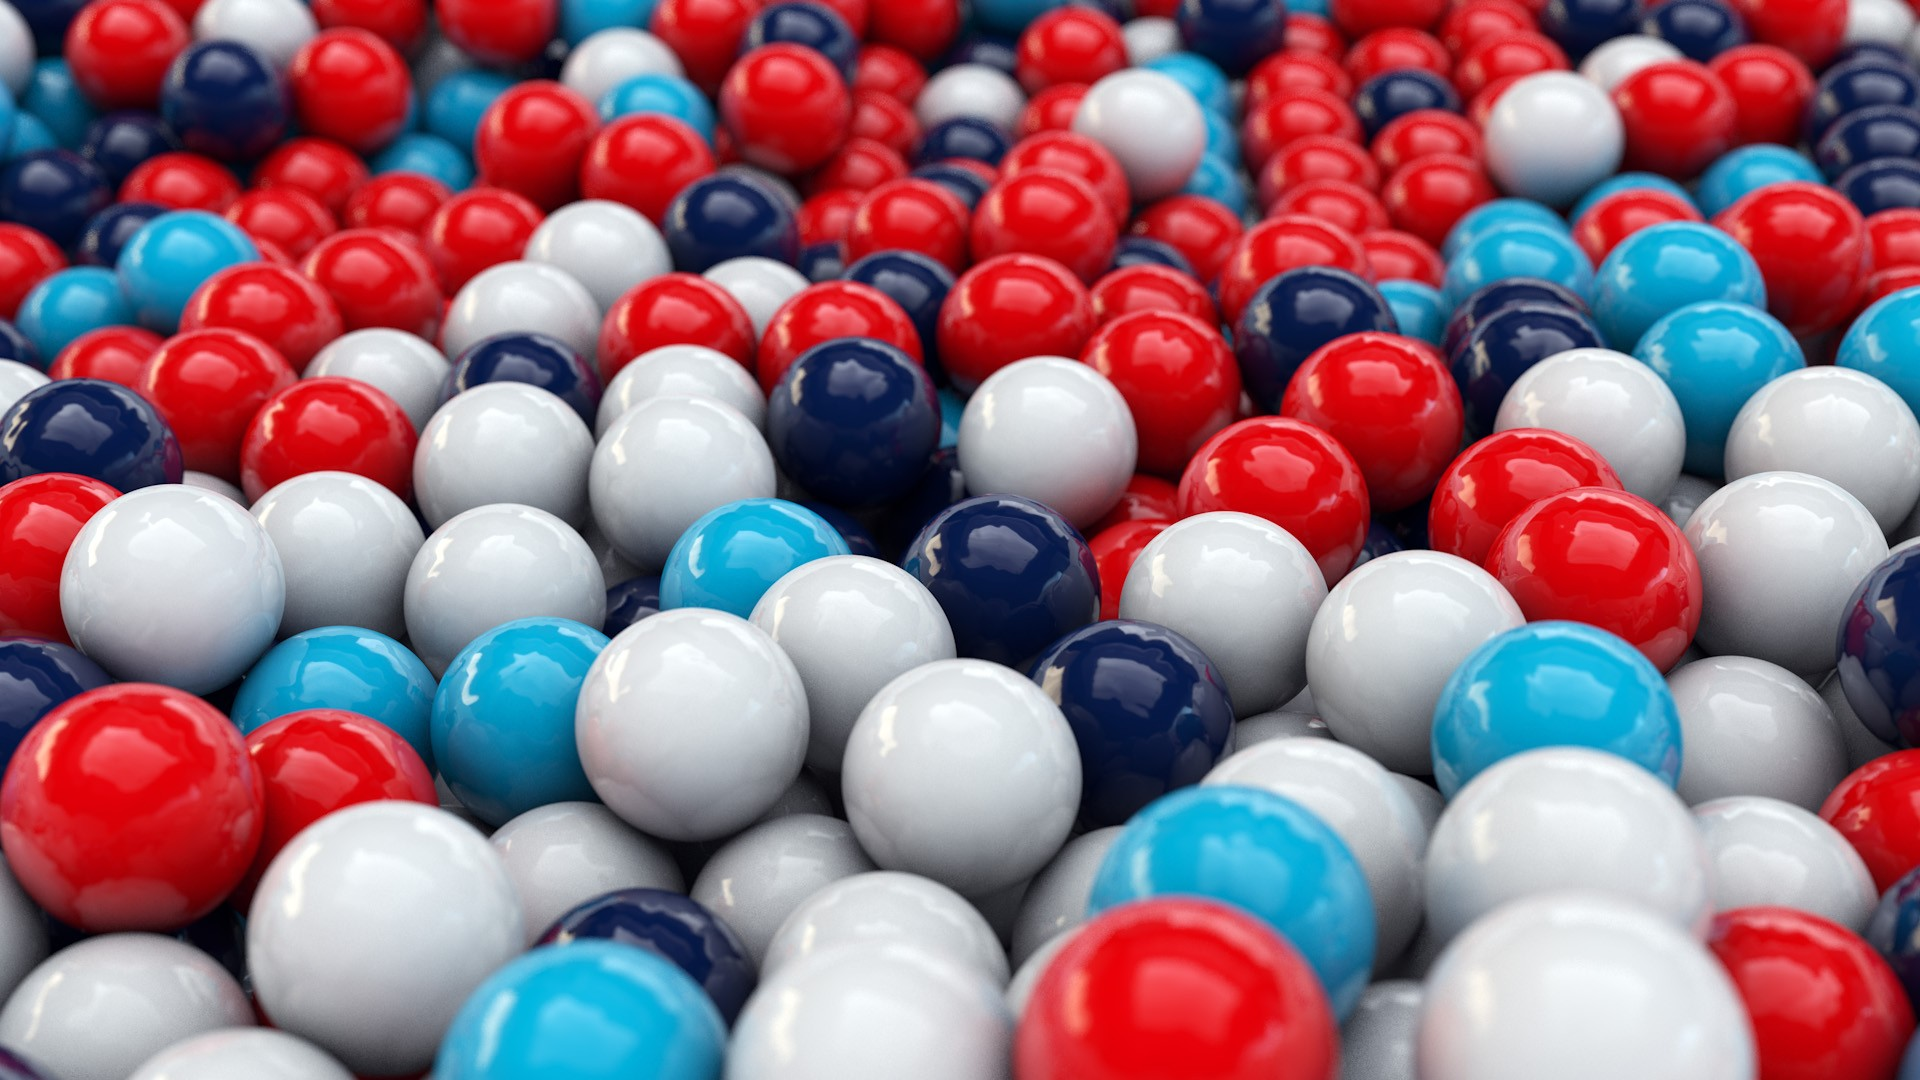 Popular Wallpaper Marble Ball - balls_smooth_surface_colorful_93224_1920x1080  Collection_743418.jpg